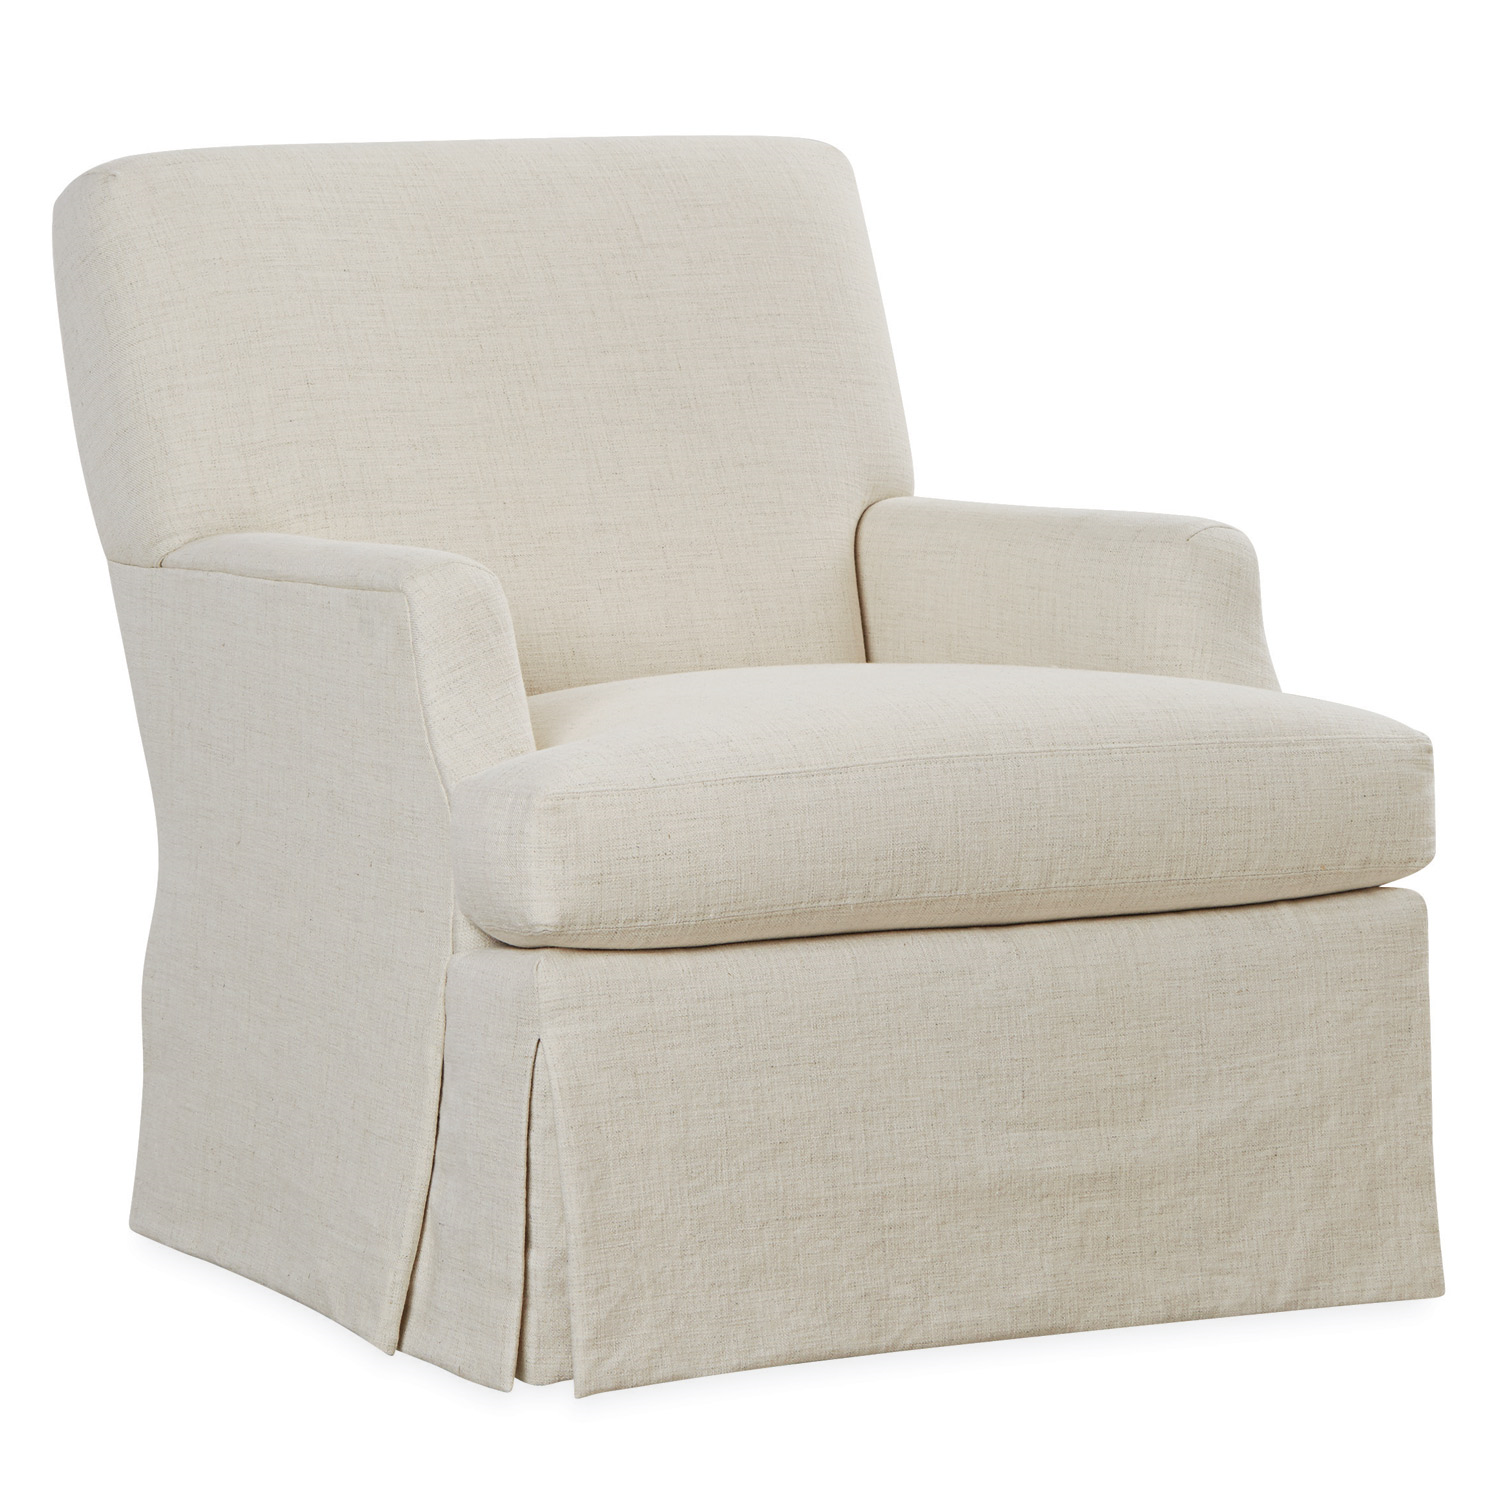 Layla Grayce Eves Accent Chair #laylagrayce